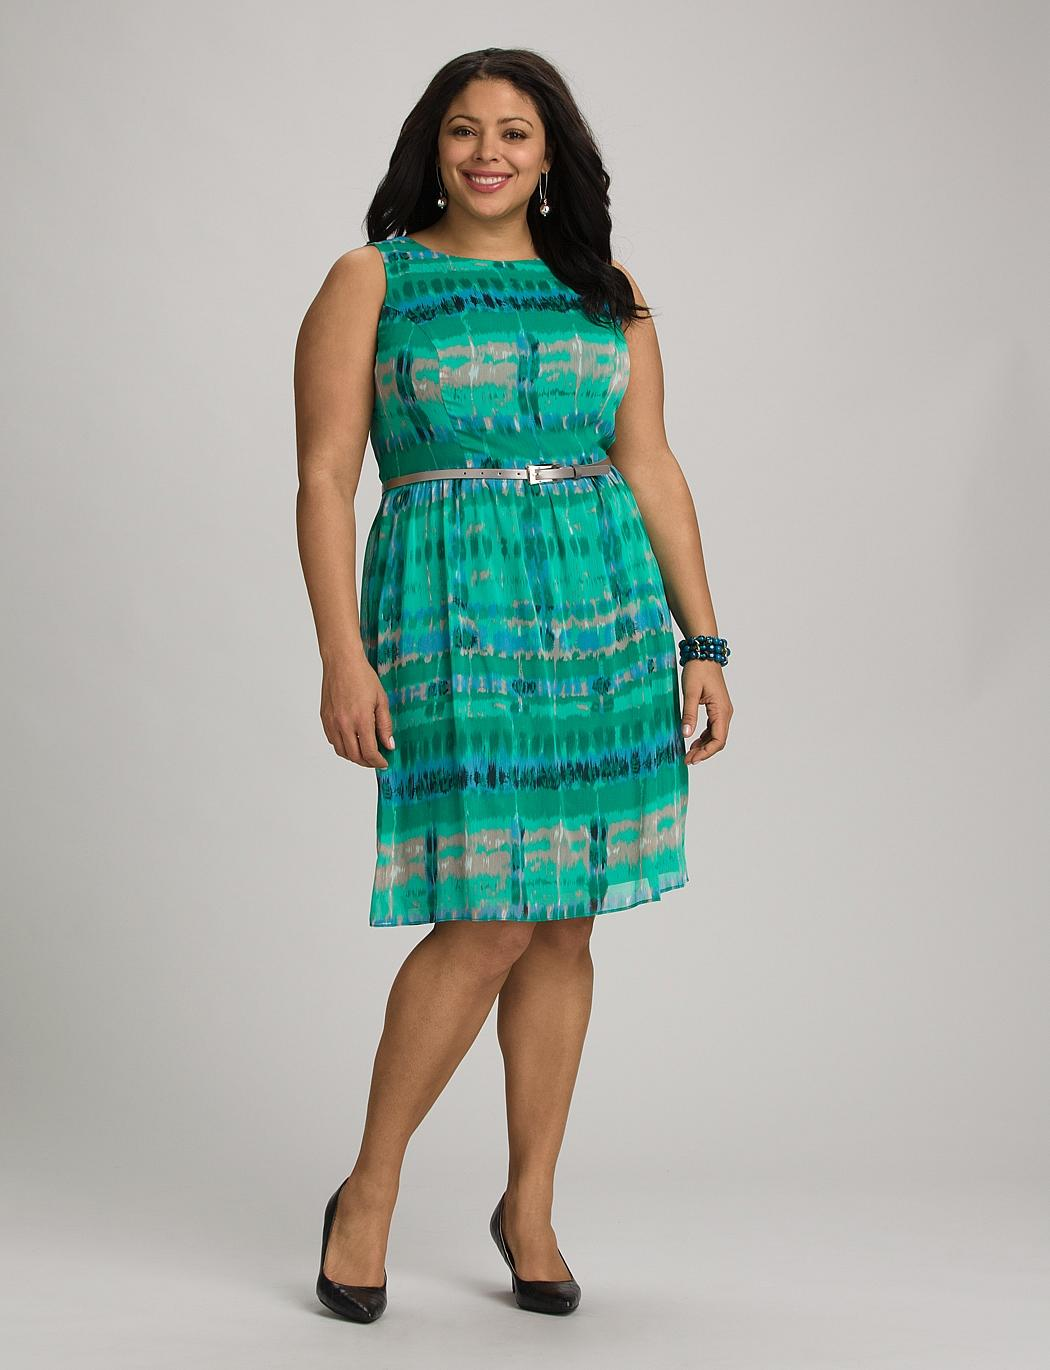 Plus Size | Dresses | Casual Dresses | from dressbarn.com